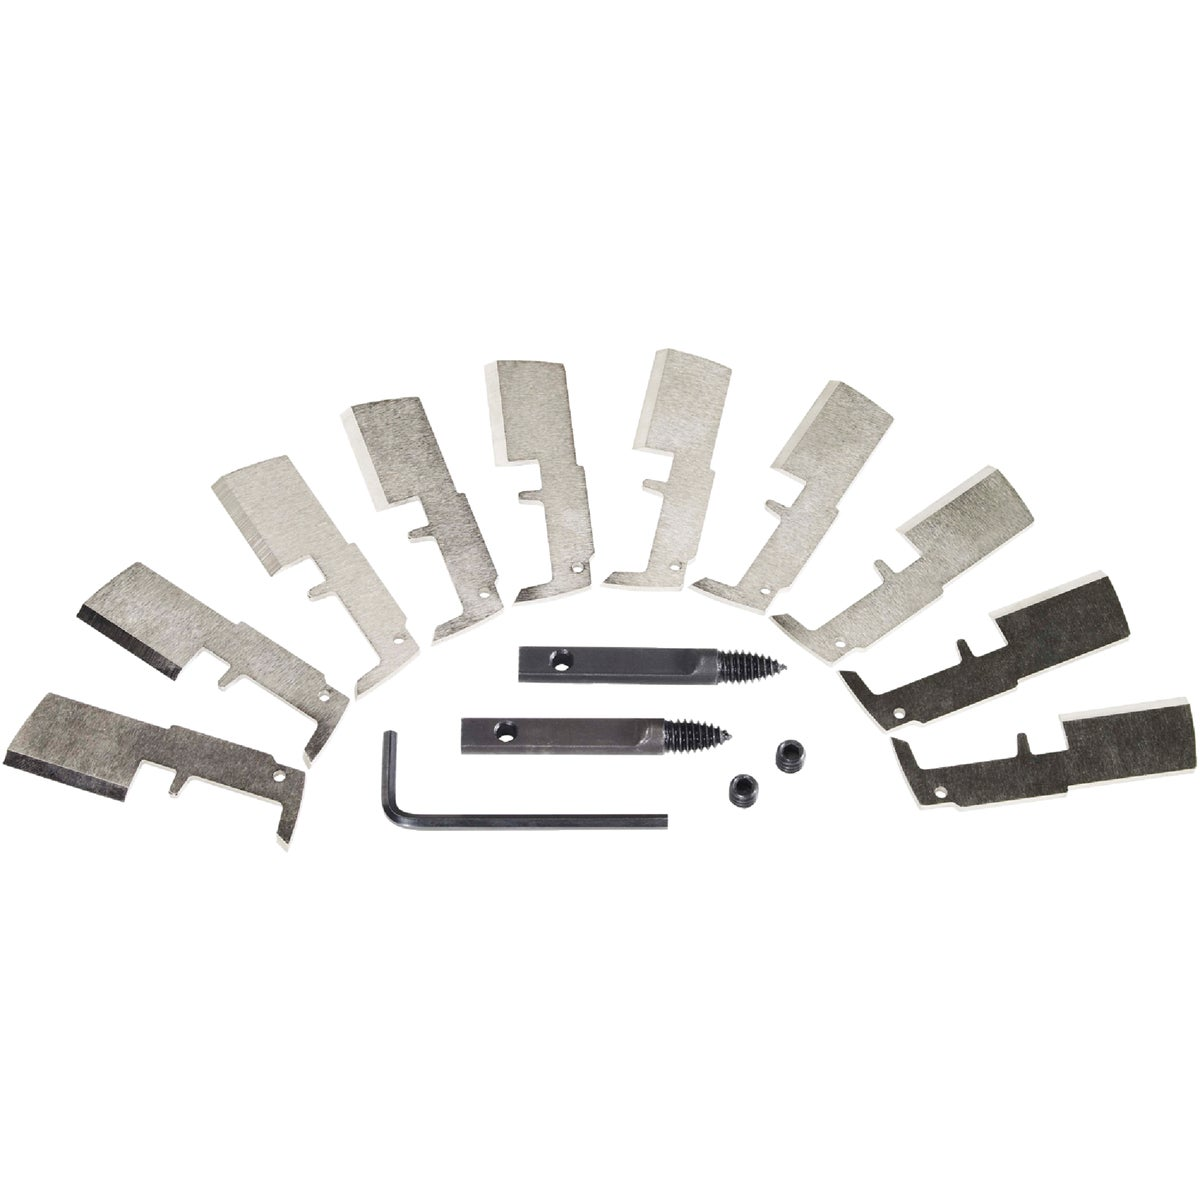 "10PK 1-3/8"" SWITCHBLADES - 48255320 by Milwaukee Accessory"